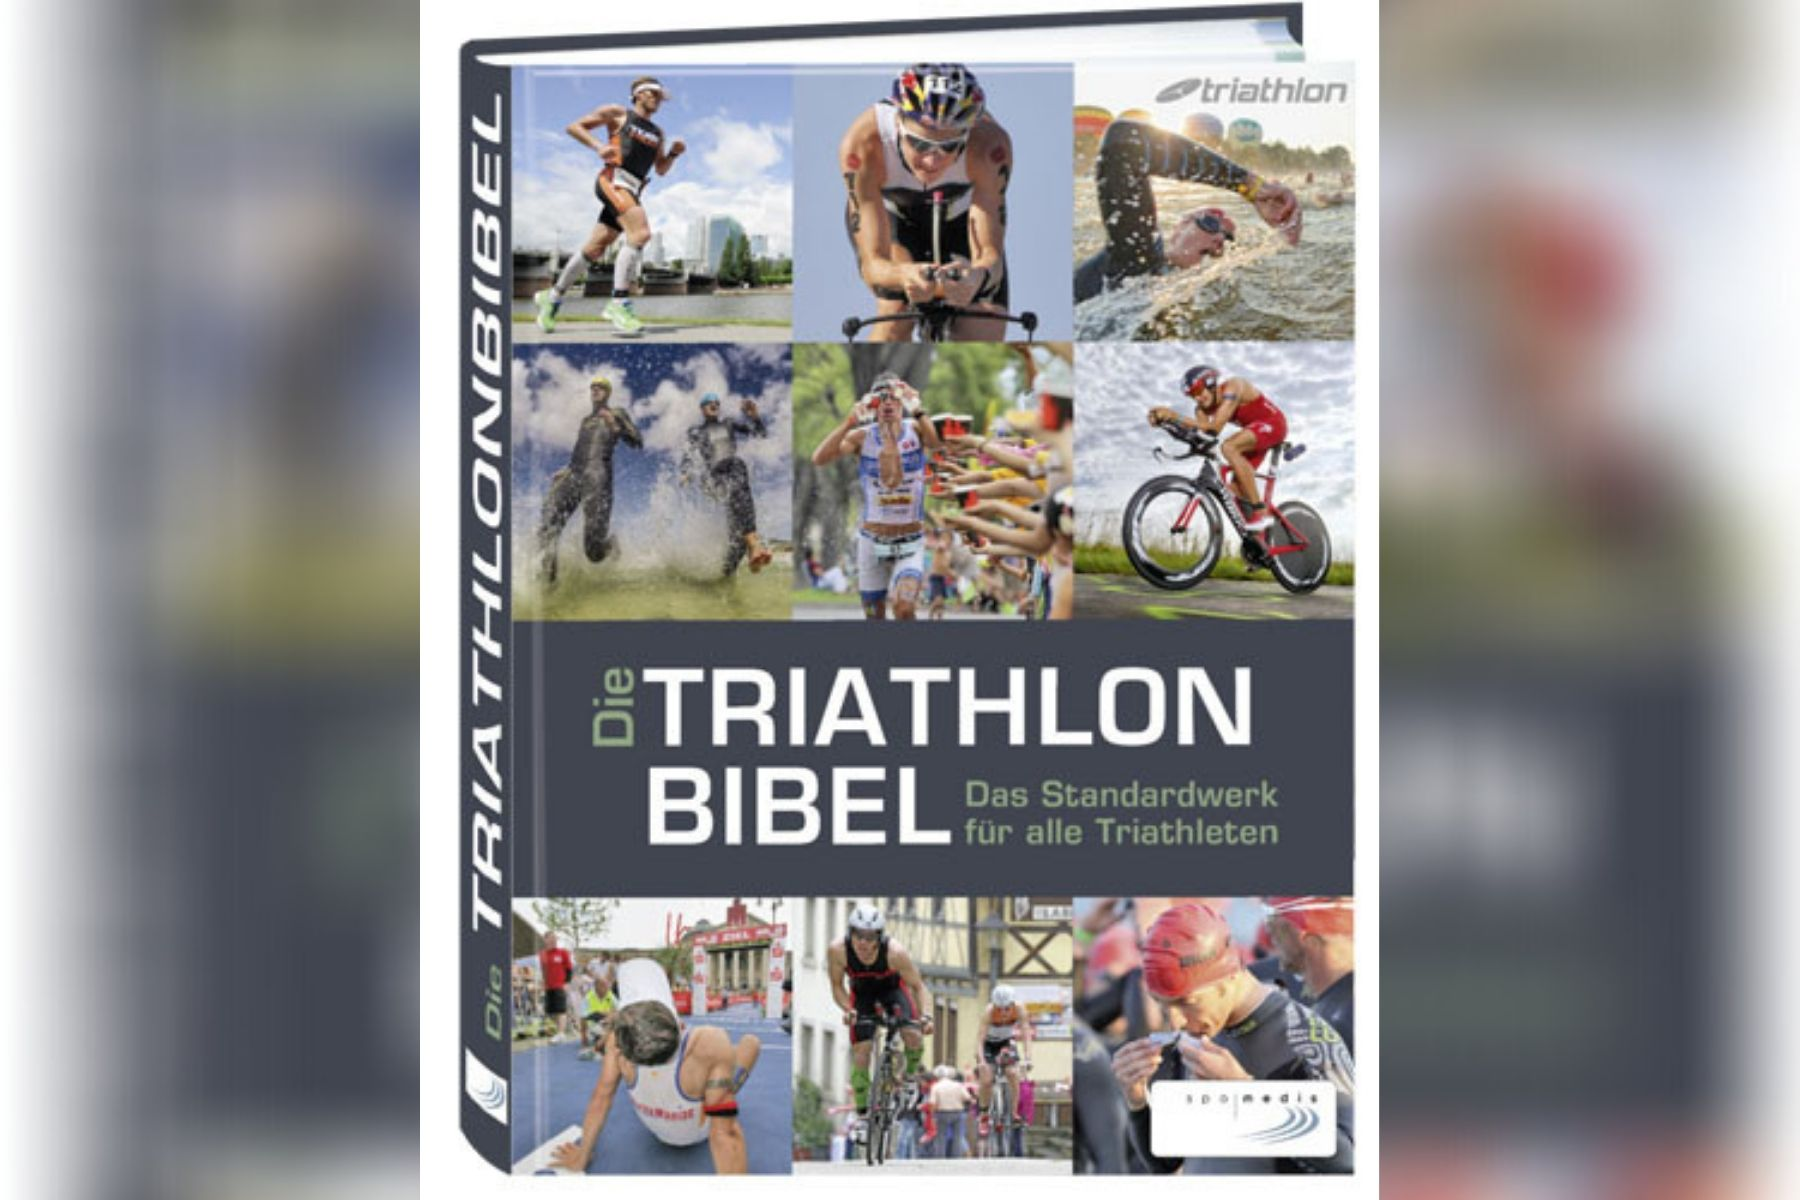 Die Triathlonbibel: Ein Standardwerk für alle Triathleten